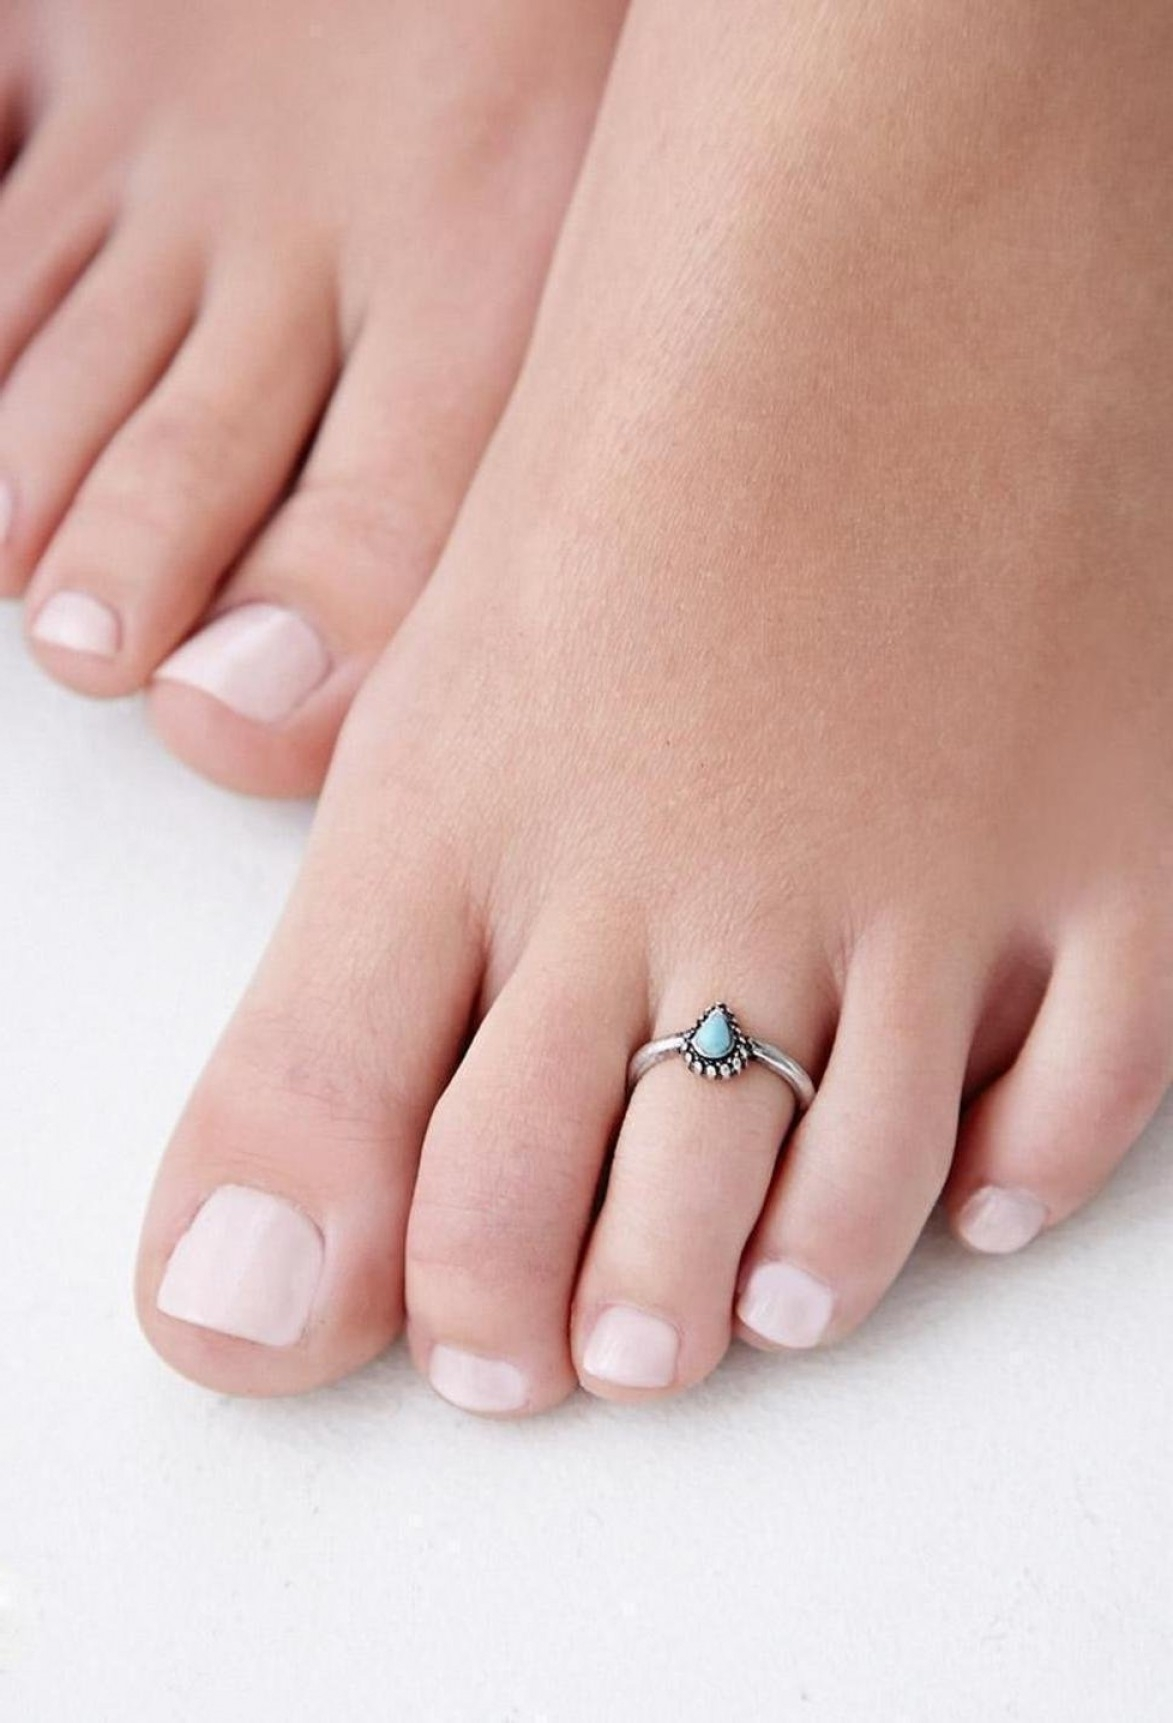 Affordable & Comfortable Toe Rings For Women | Trends4us Pertaining To Most Current Toe Rings For Women (View 6 of 15)